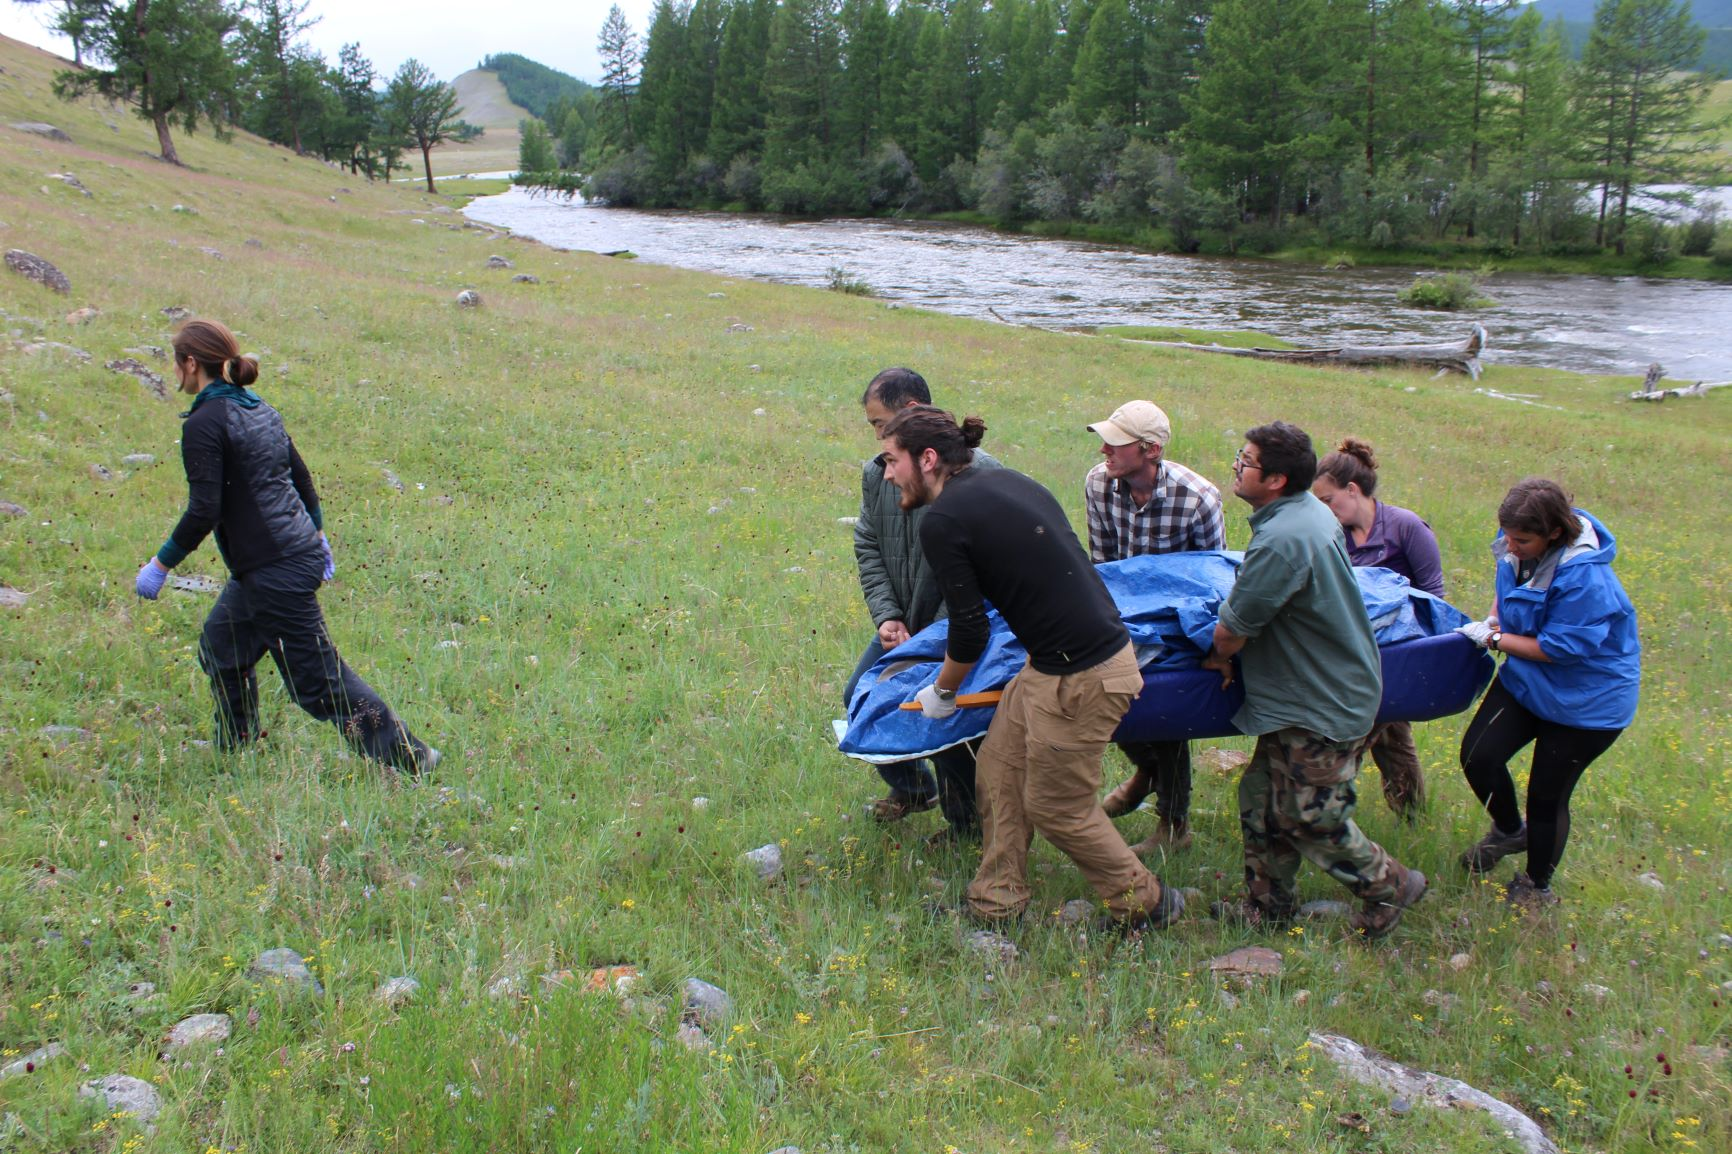 WFR students transport a patient using a litter constructed from gear found in most field camps during a scenario